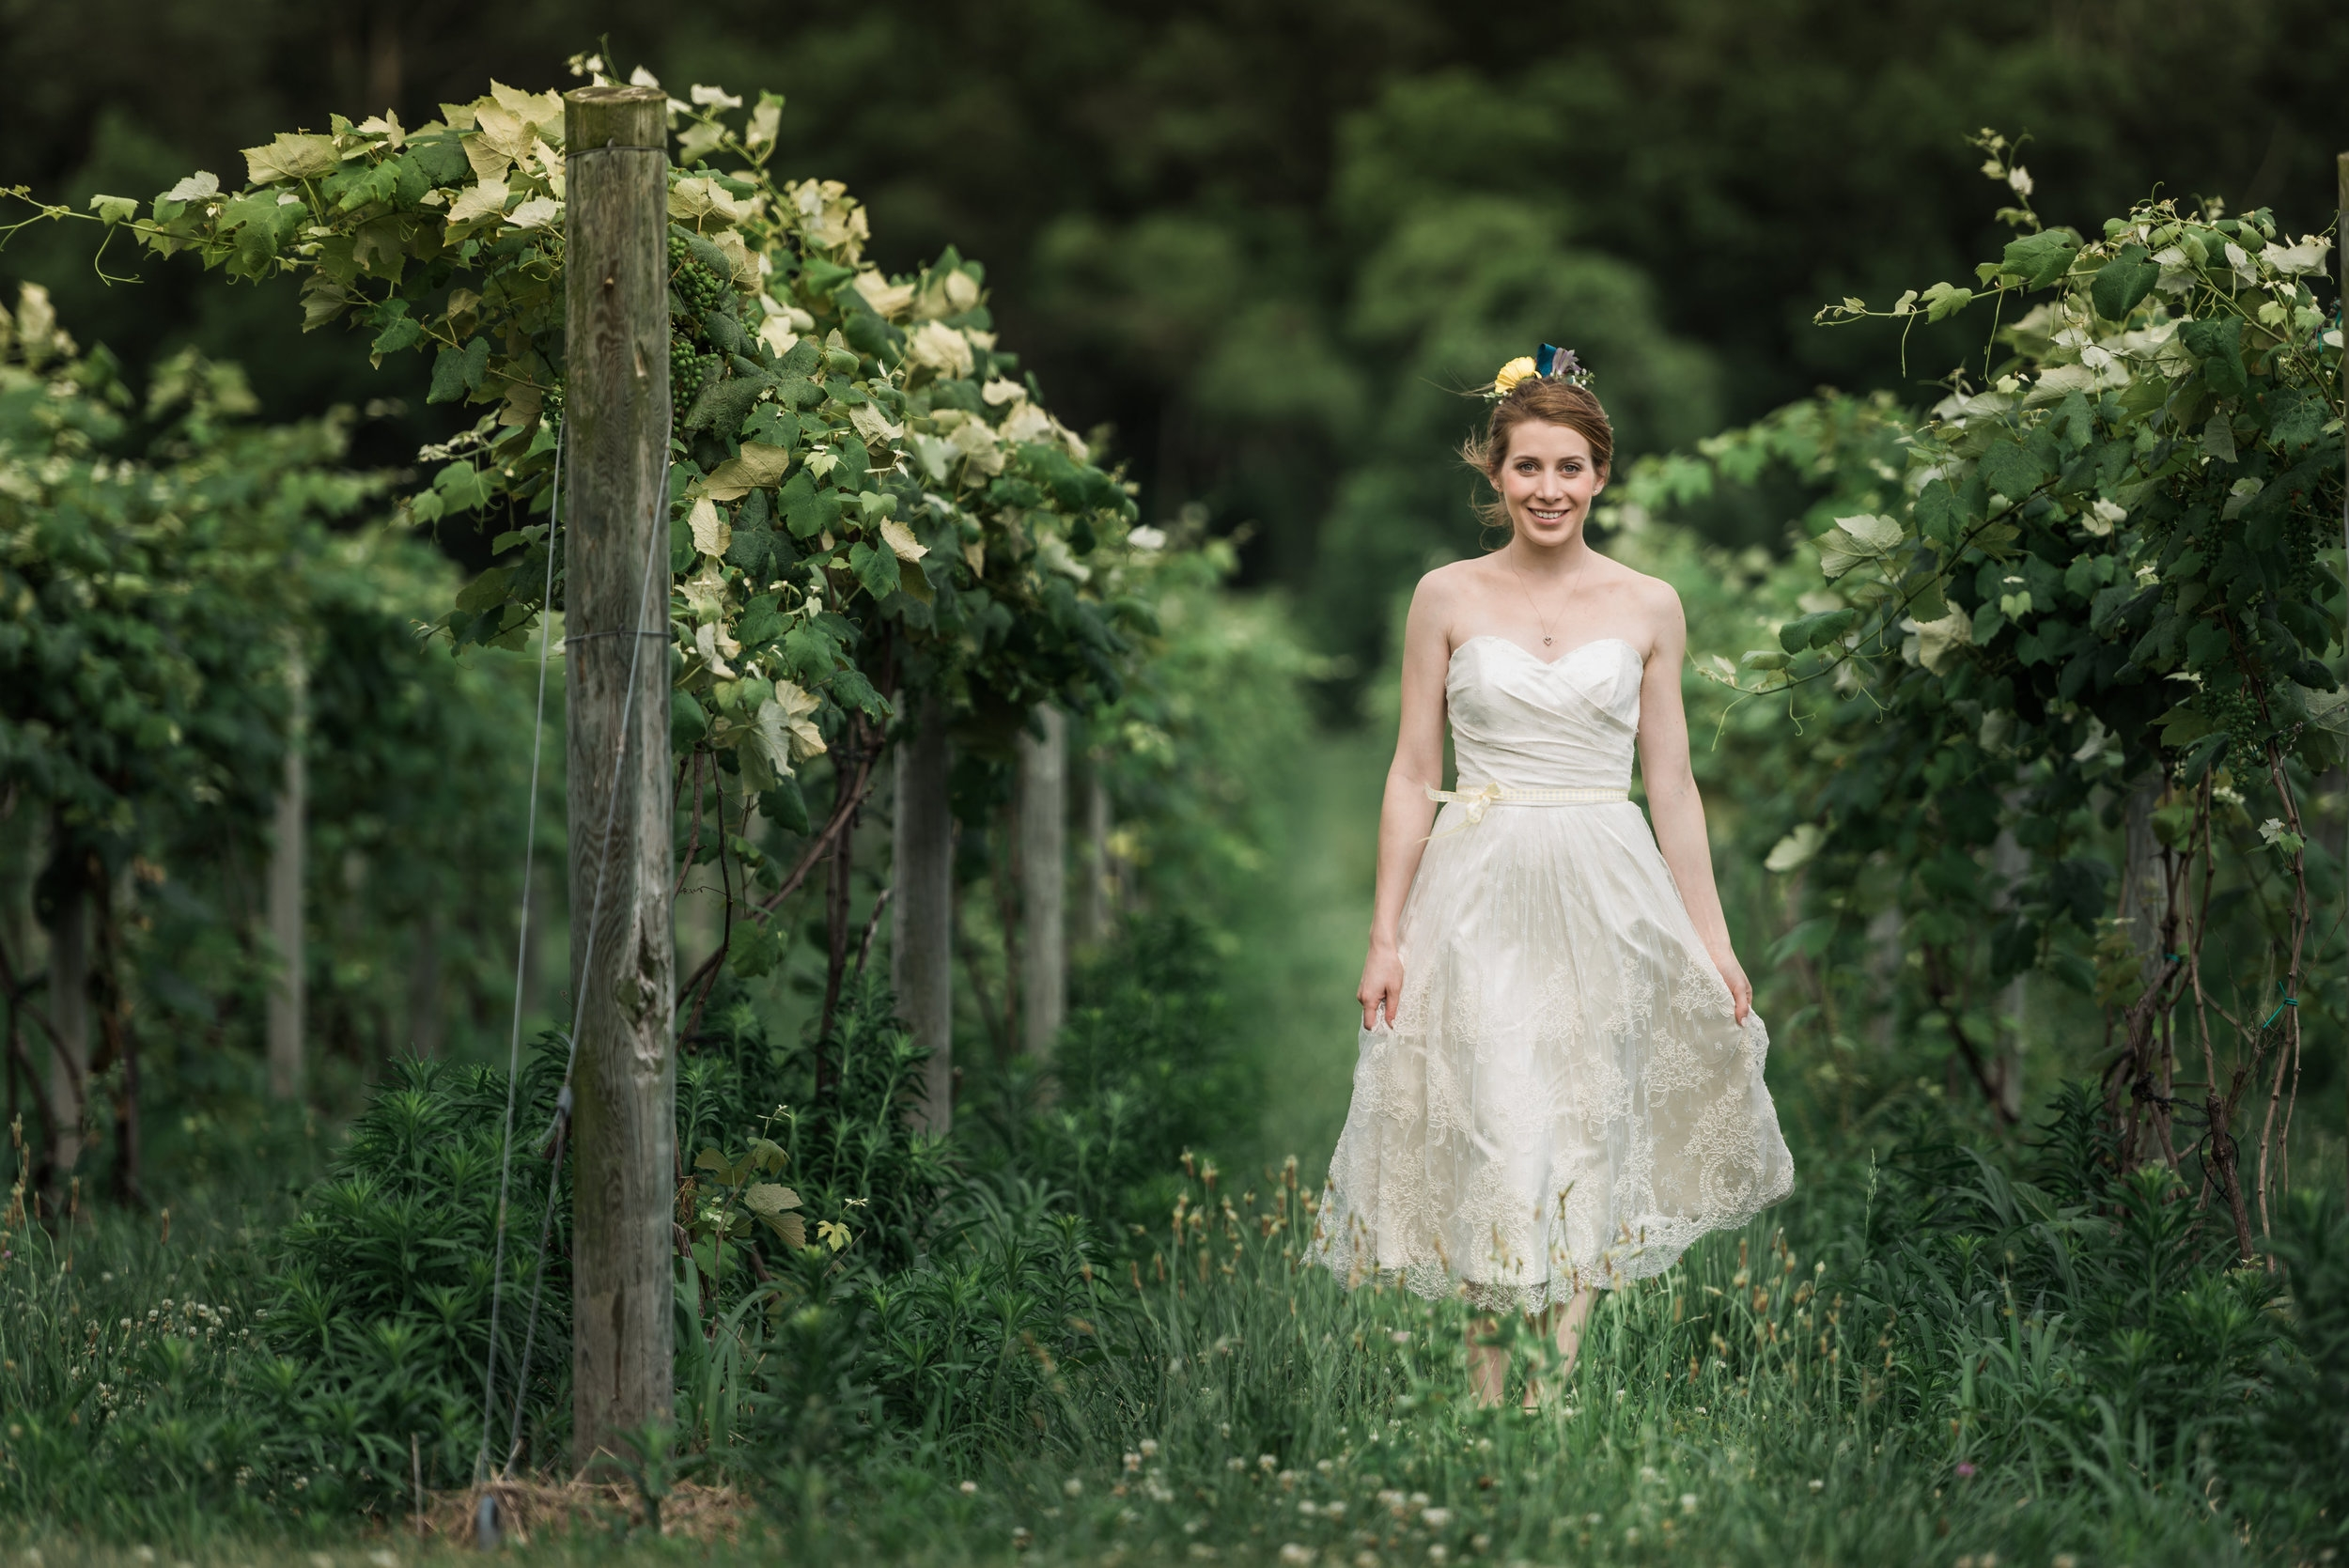 Laura Wight Photography